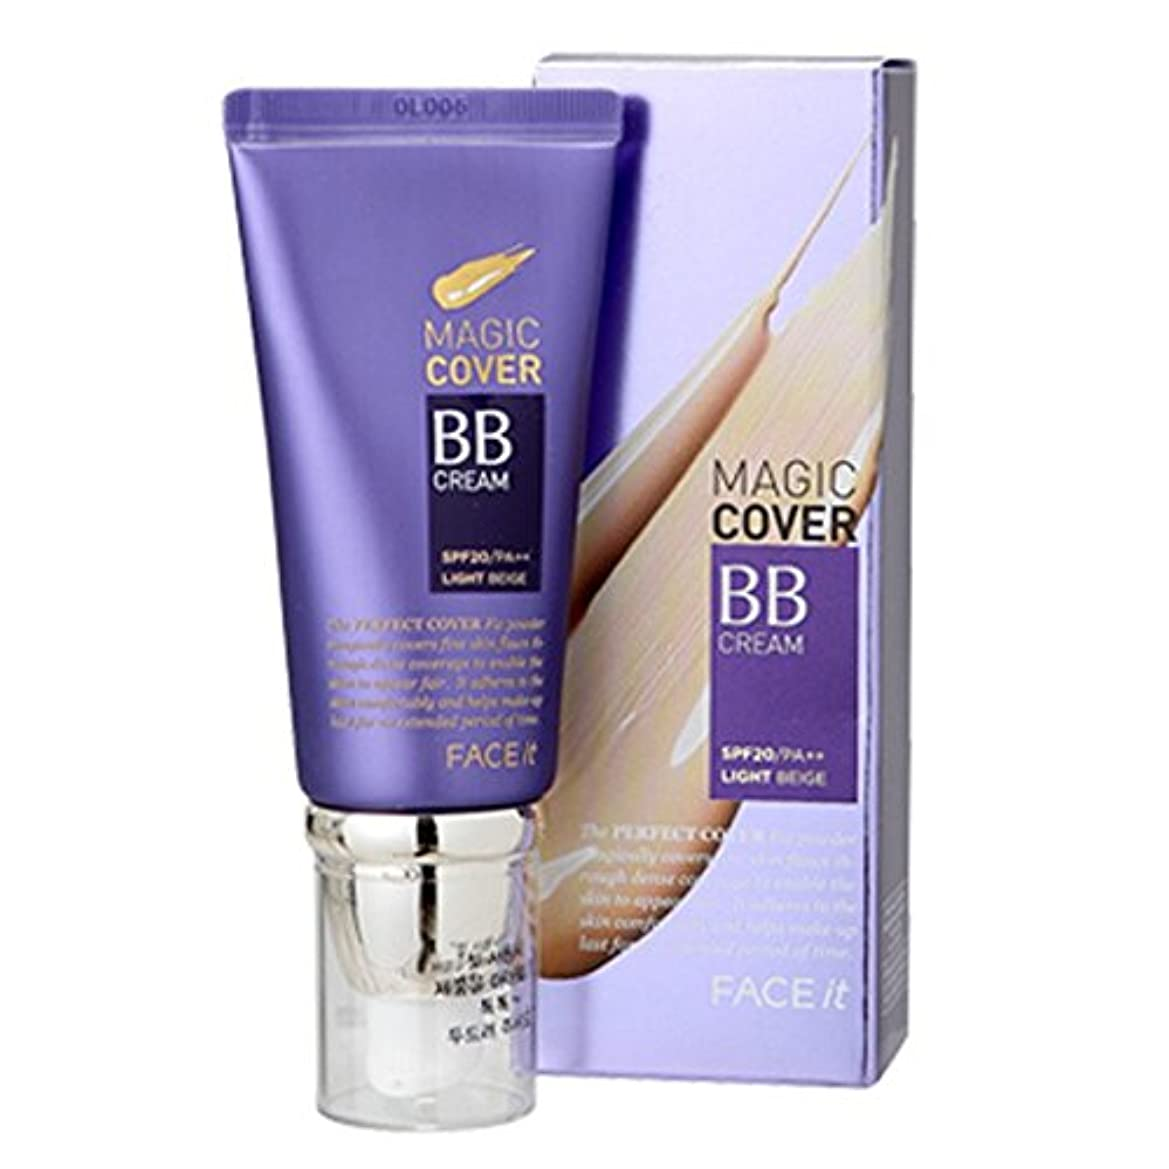 ザフェイスショップ The Face Shop Face It Magic Cover BB Cream 45ml (02 Natural Beige)